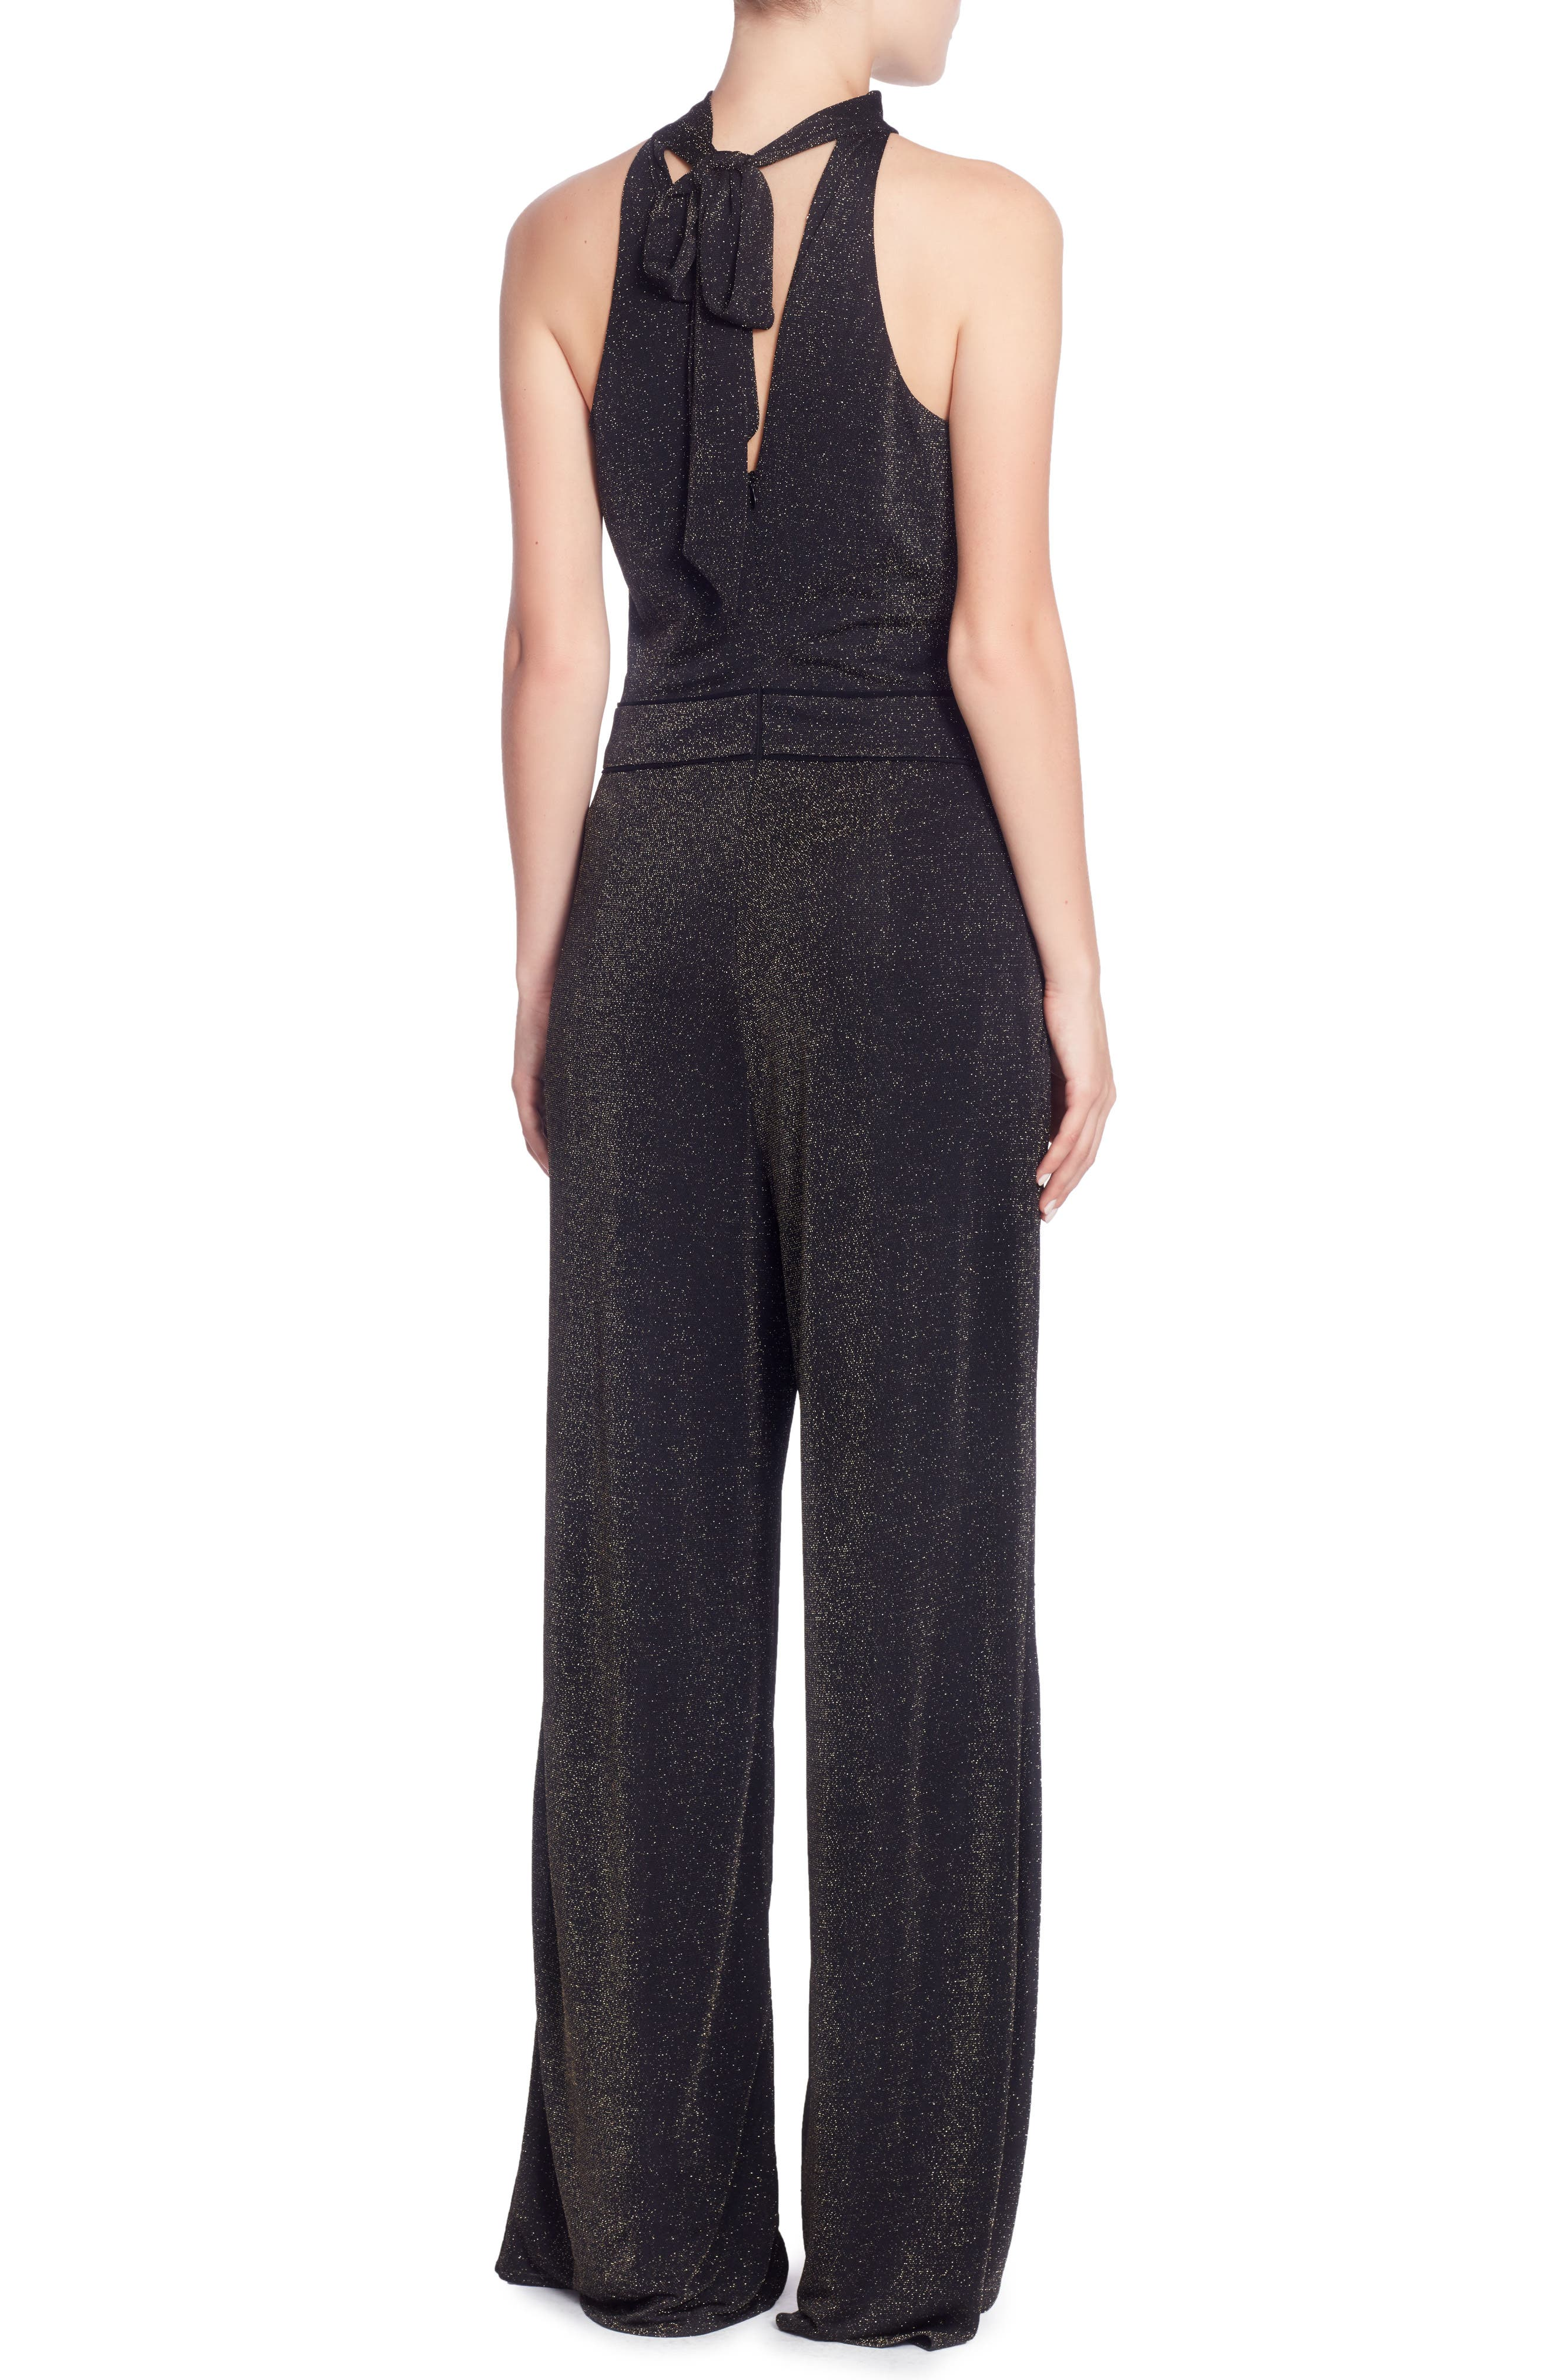 Campbell Jumpsuit,                             Alternate thumbnail 2, color,                             004